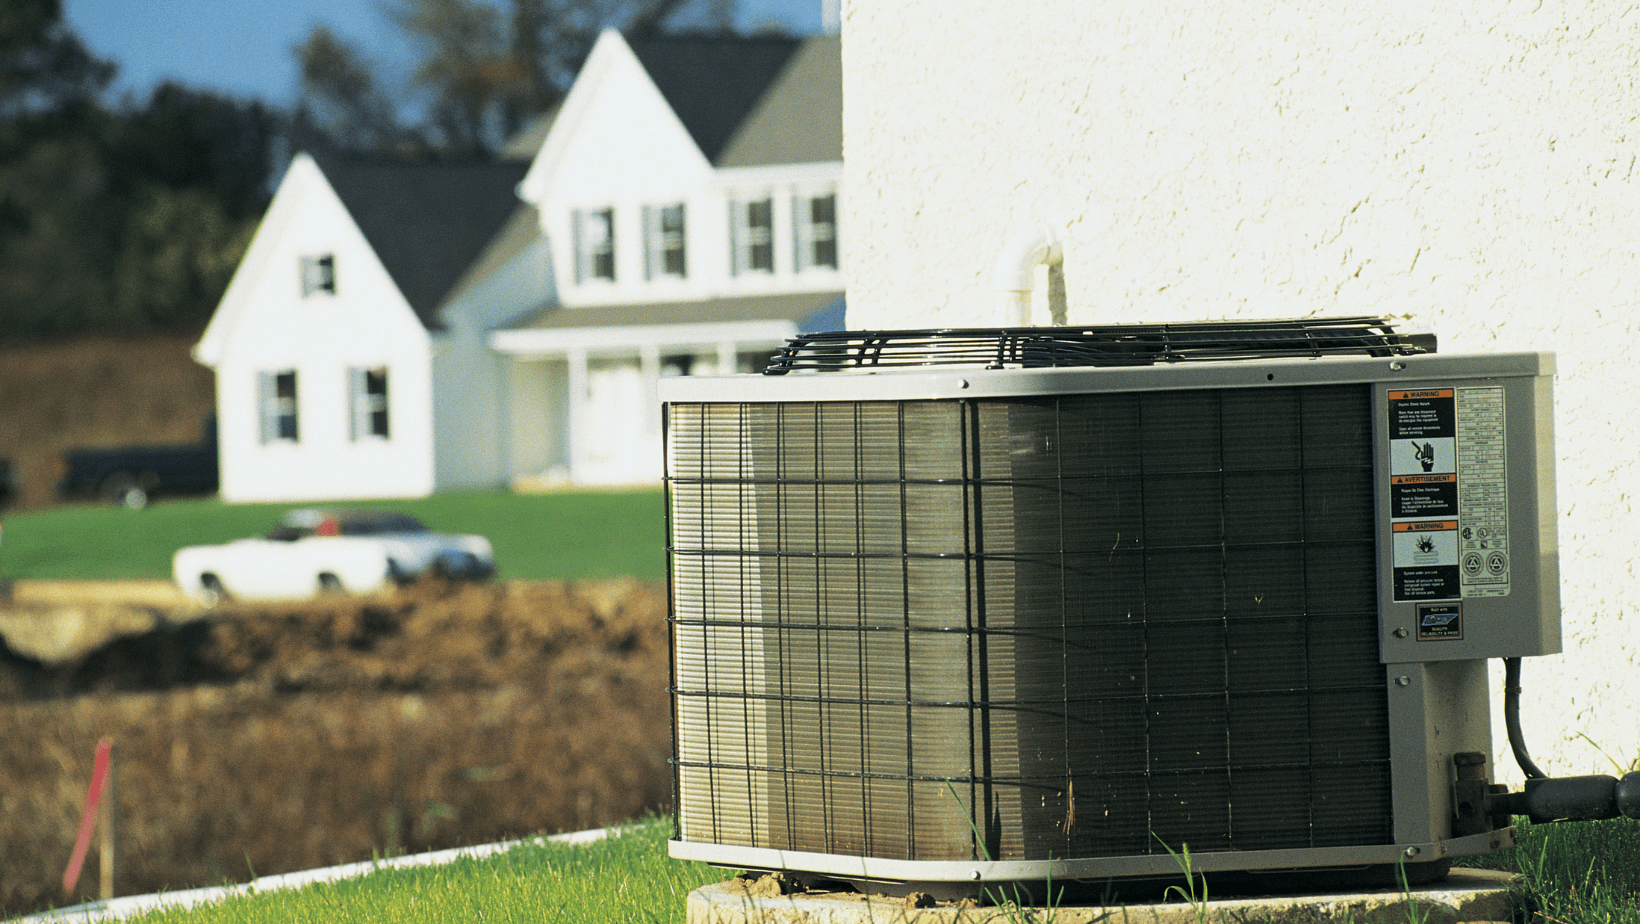 Increase The Longevity Of Your A/C With These Simple Tips